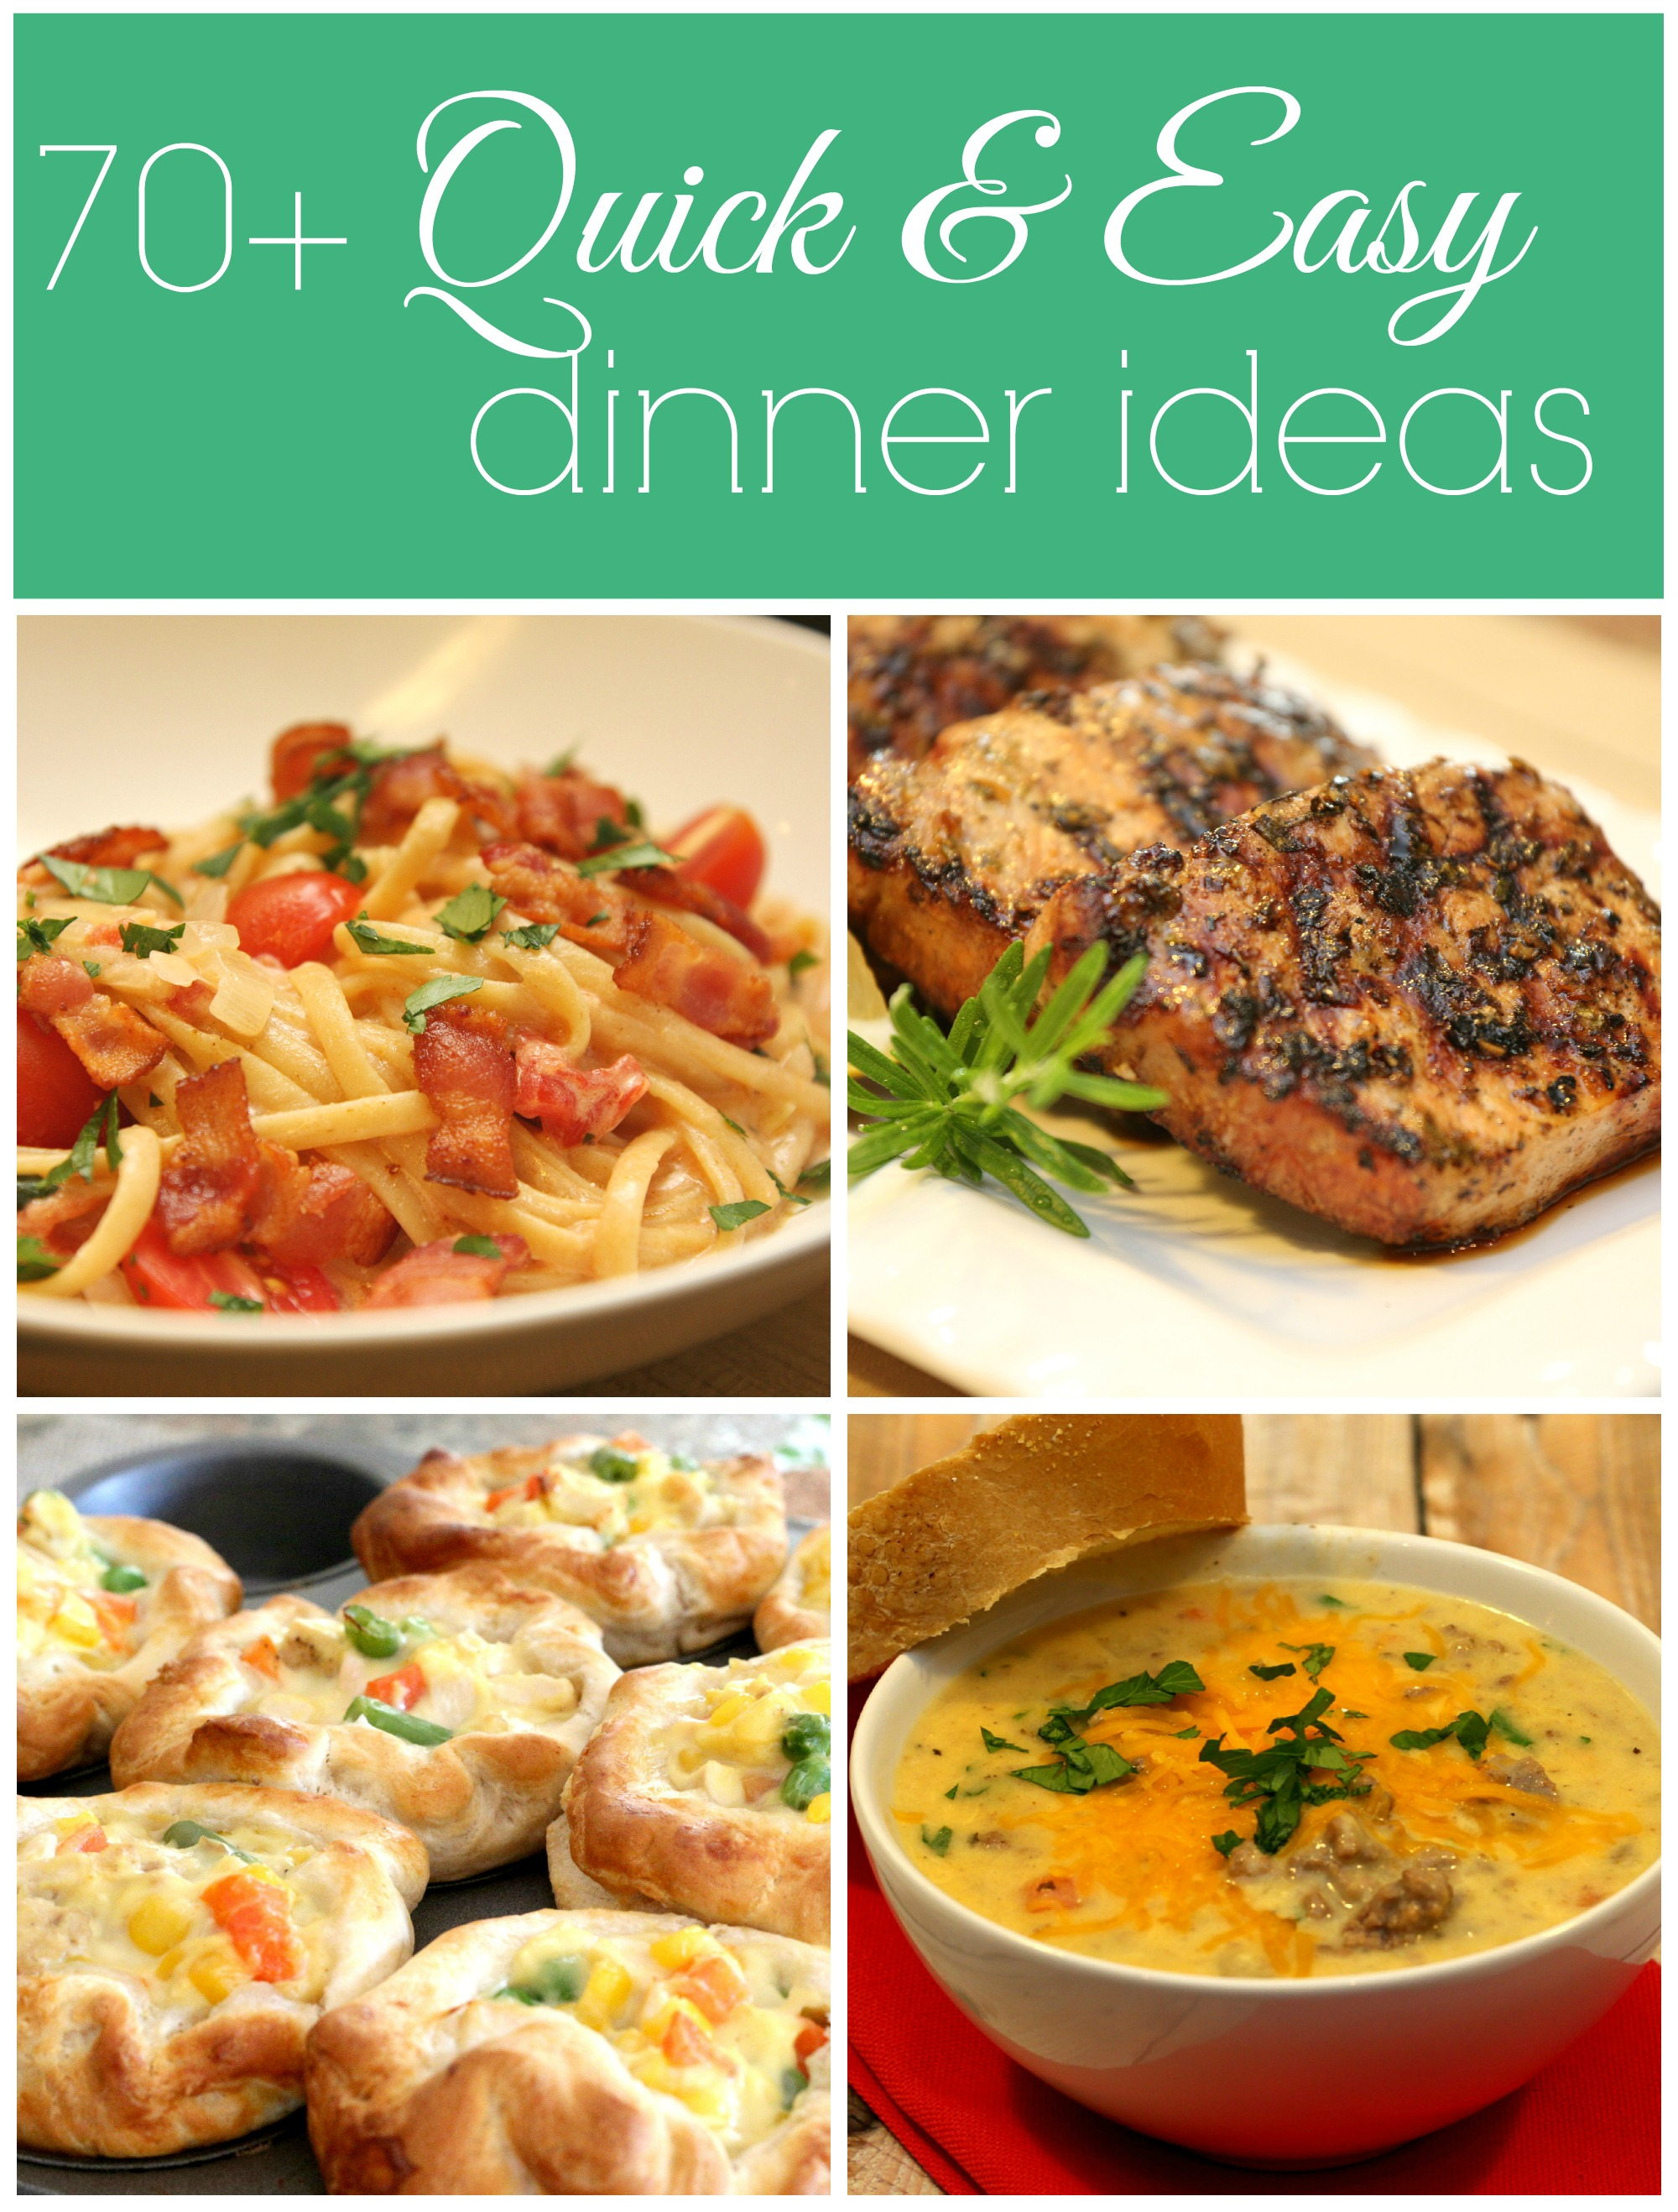 20 easy crock pot recipes it 39 s a keeper for Dinner ideas for two quick and easy